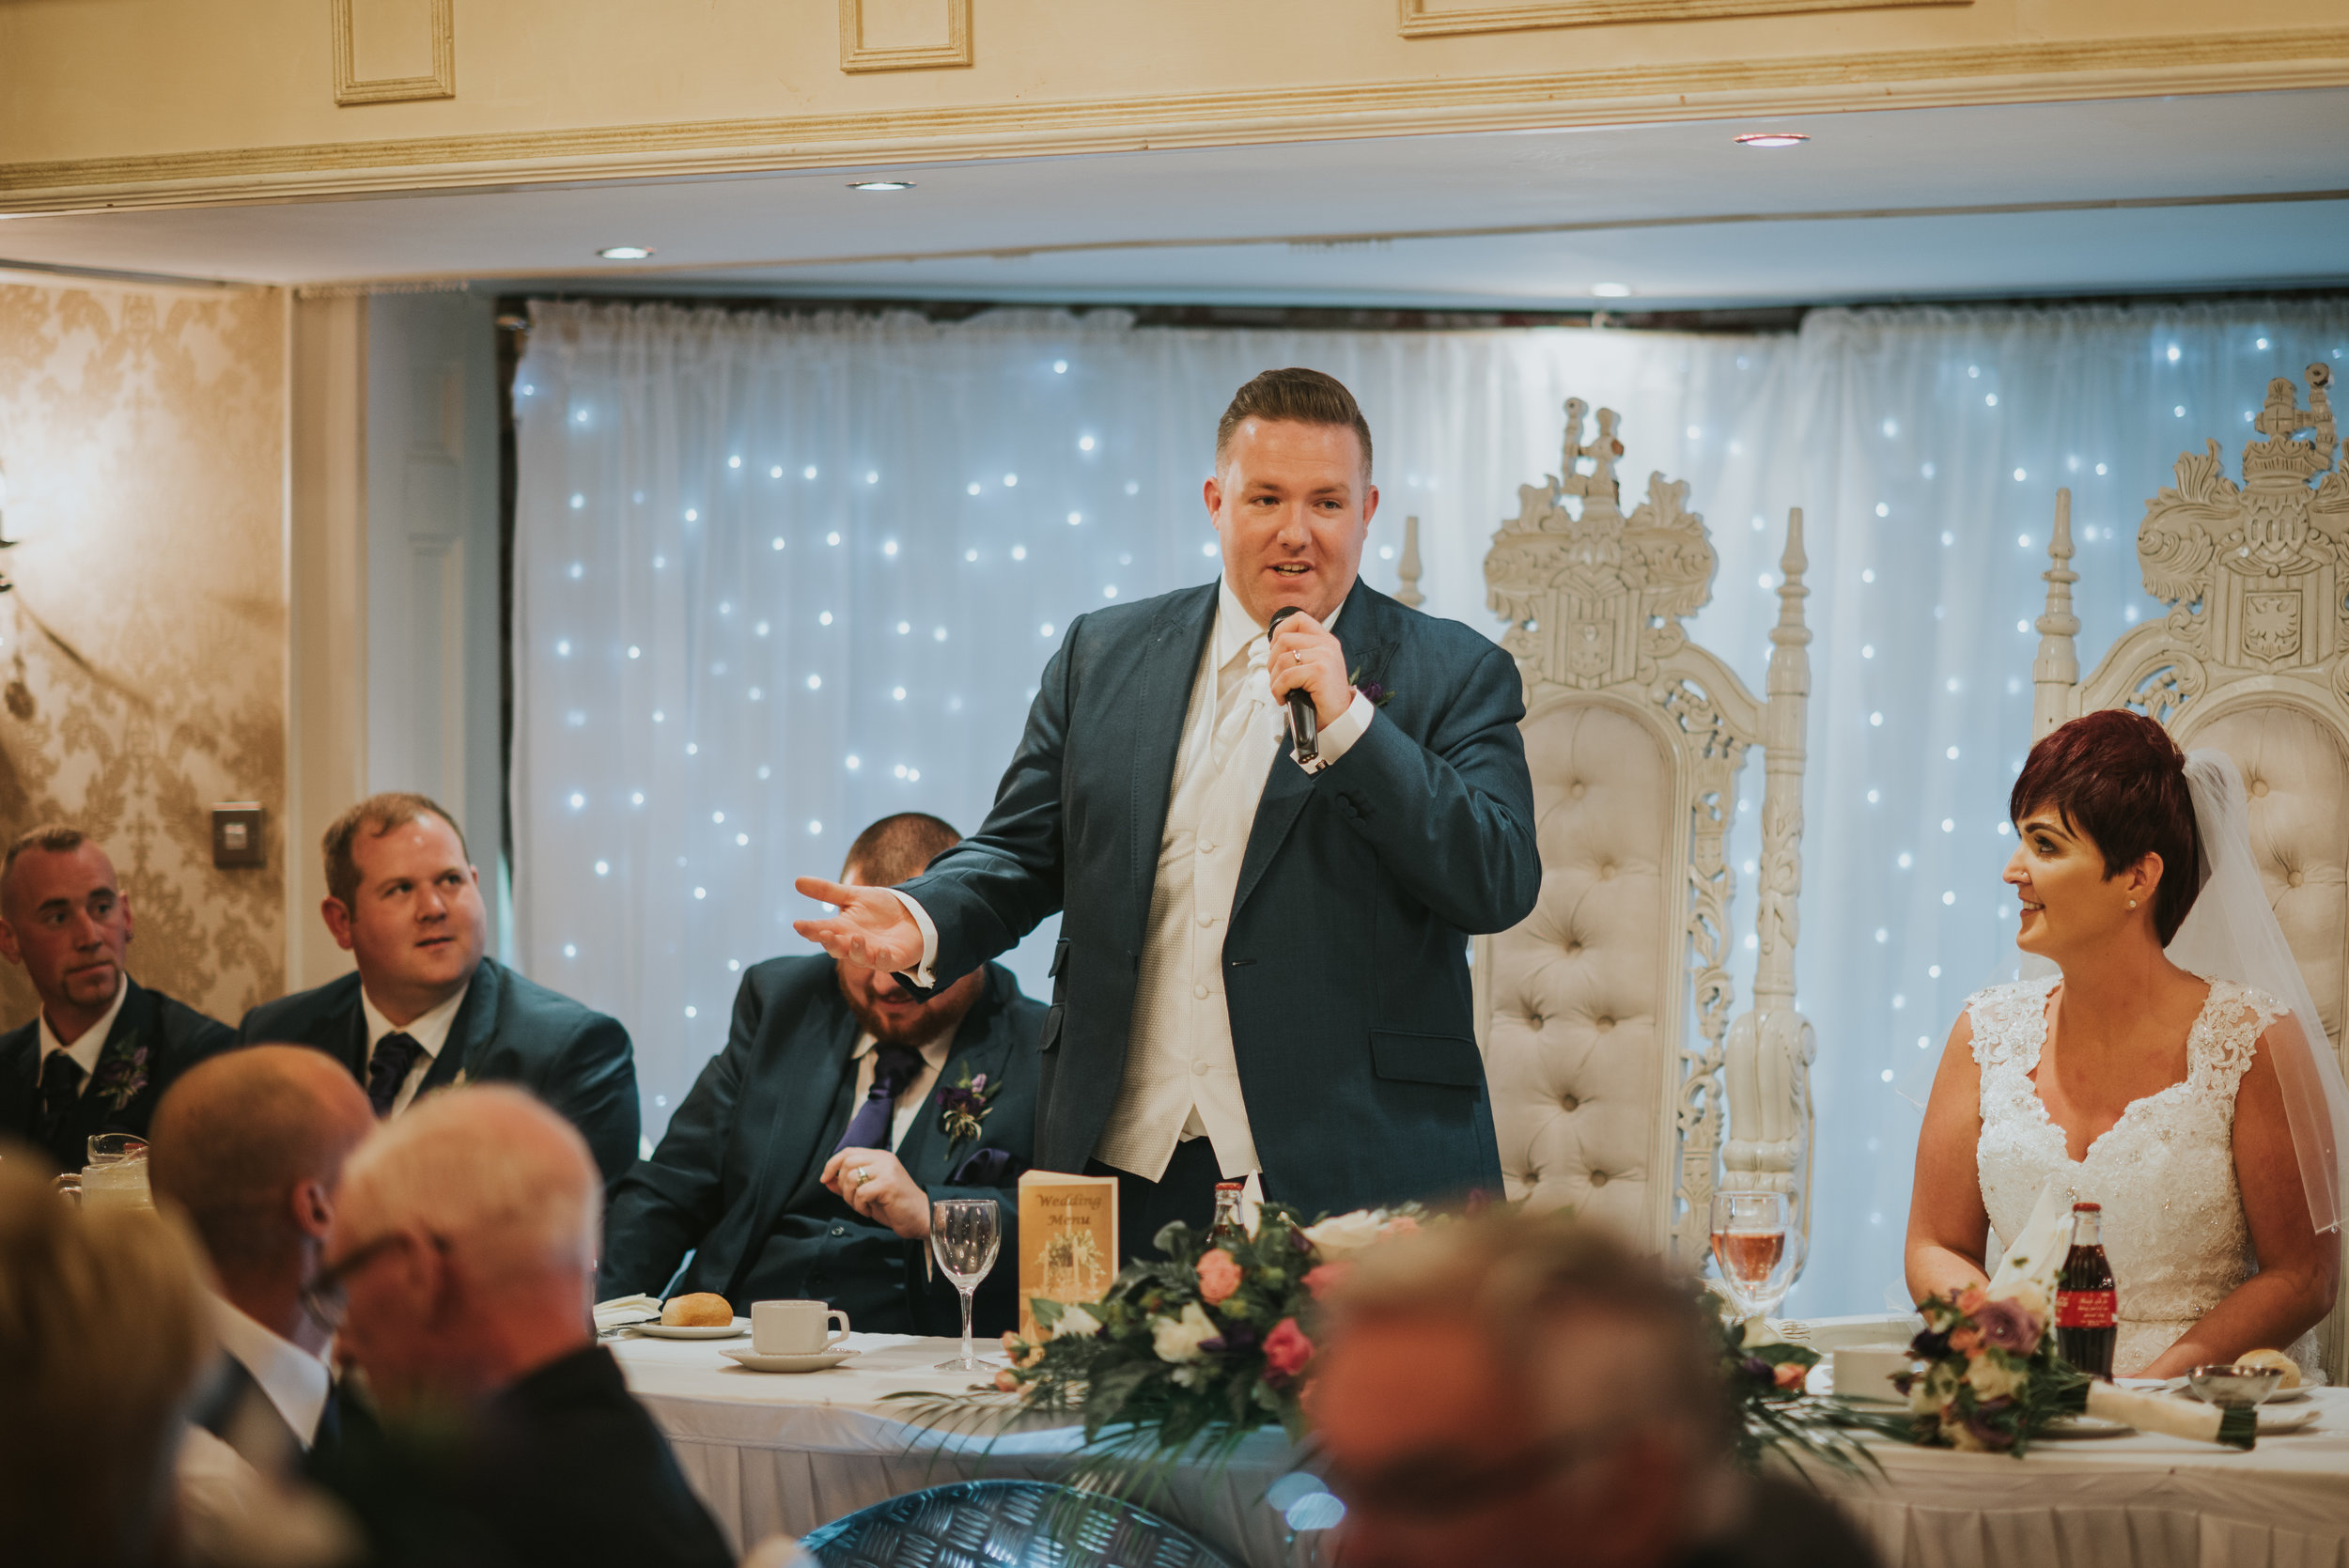 Bushtown Hotel Wedding Photographer Pure Photo N.I grooms speech